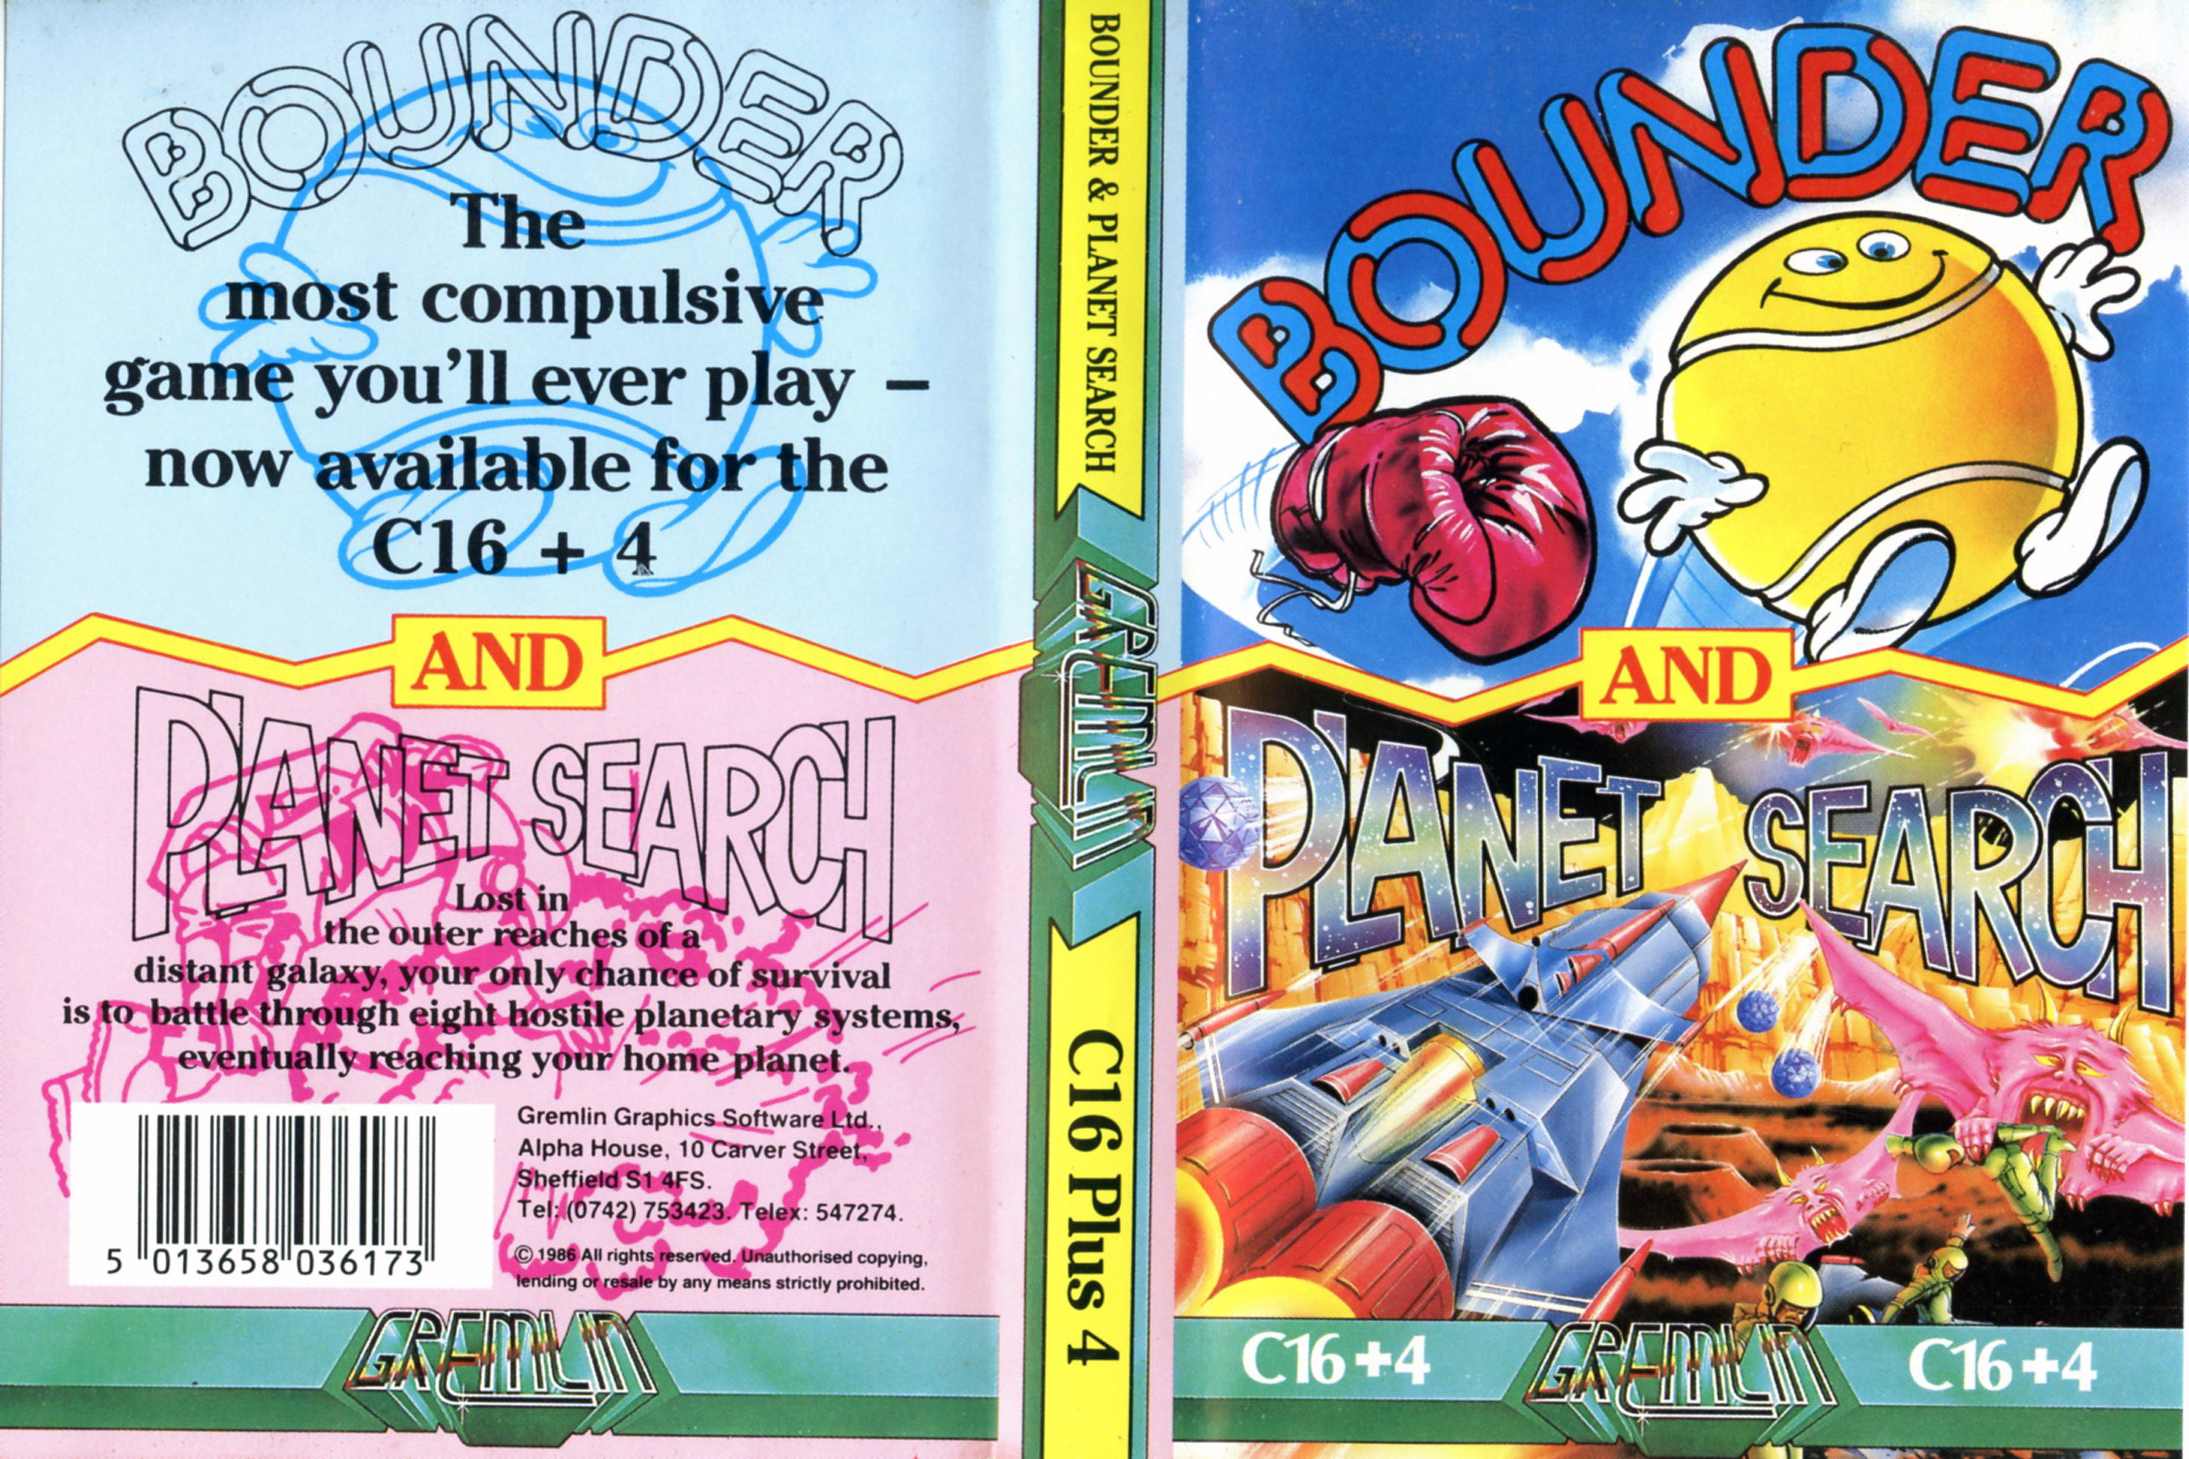 Bounder and Planet Search (Commodore C16/Plus 4)